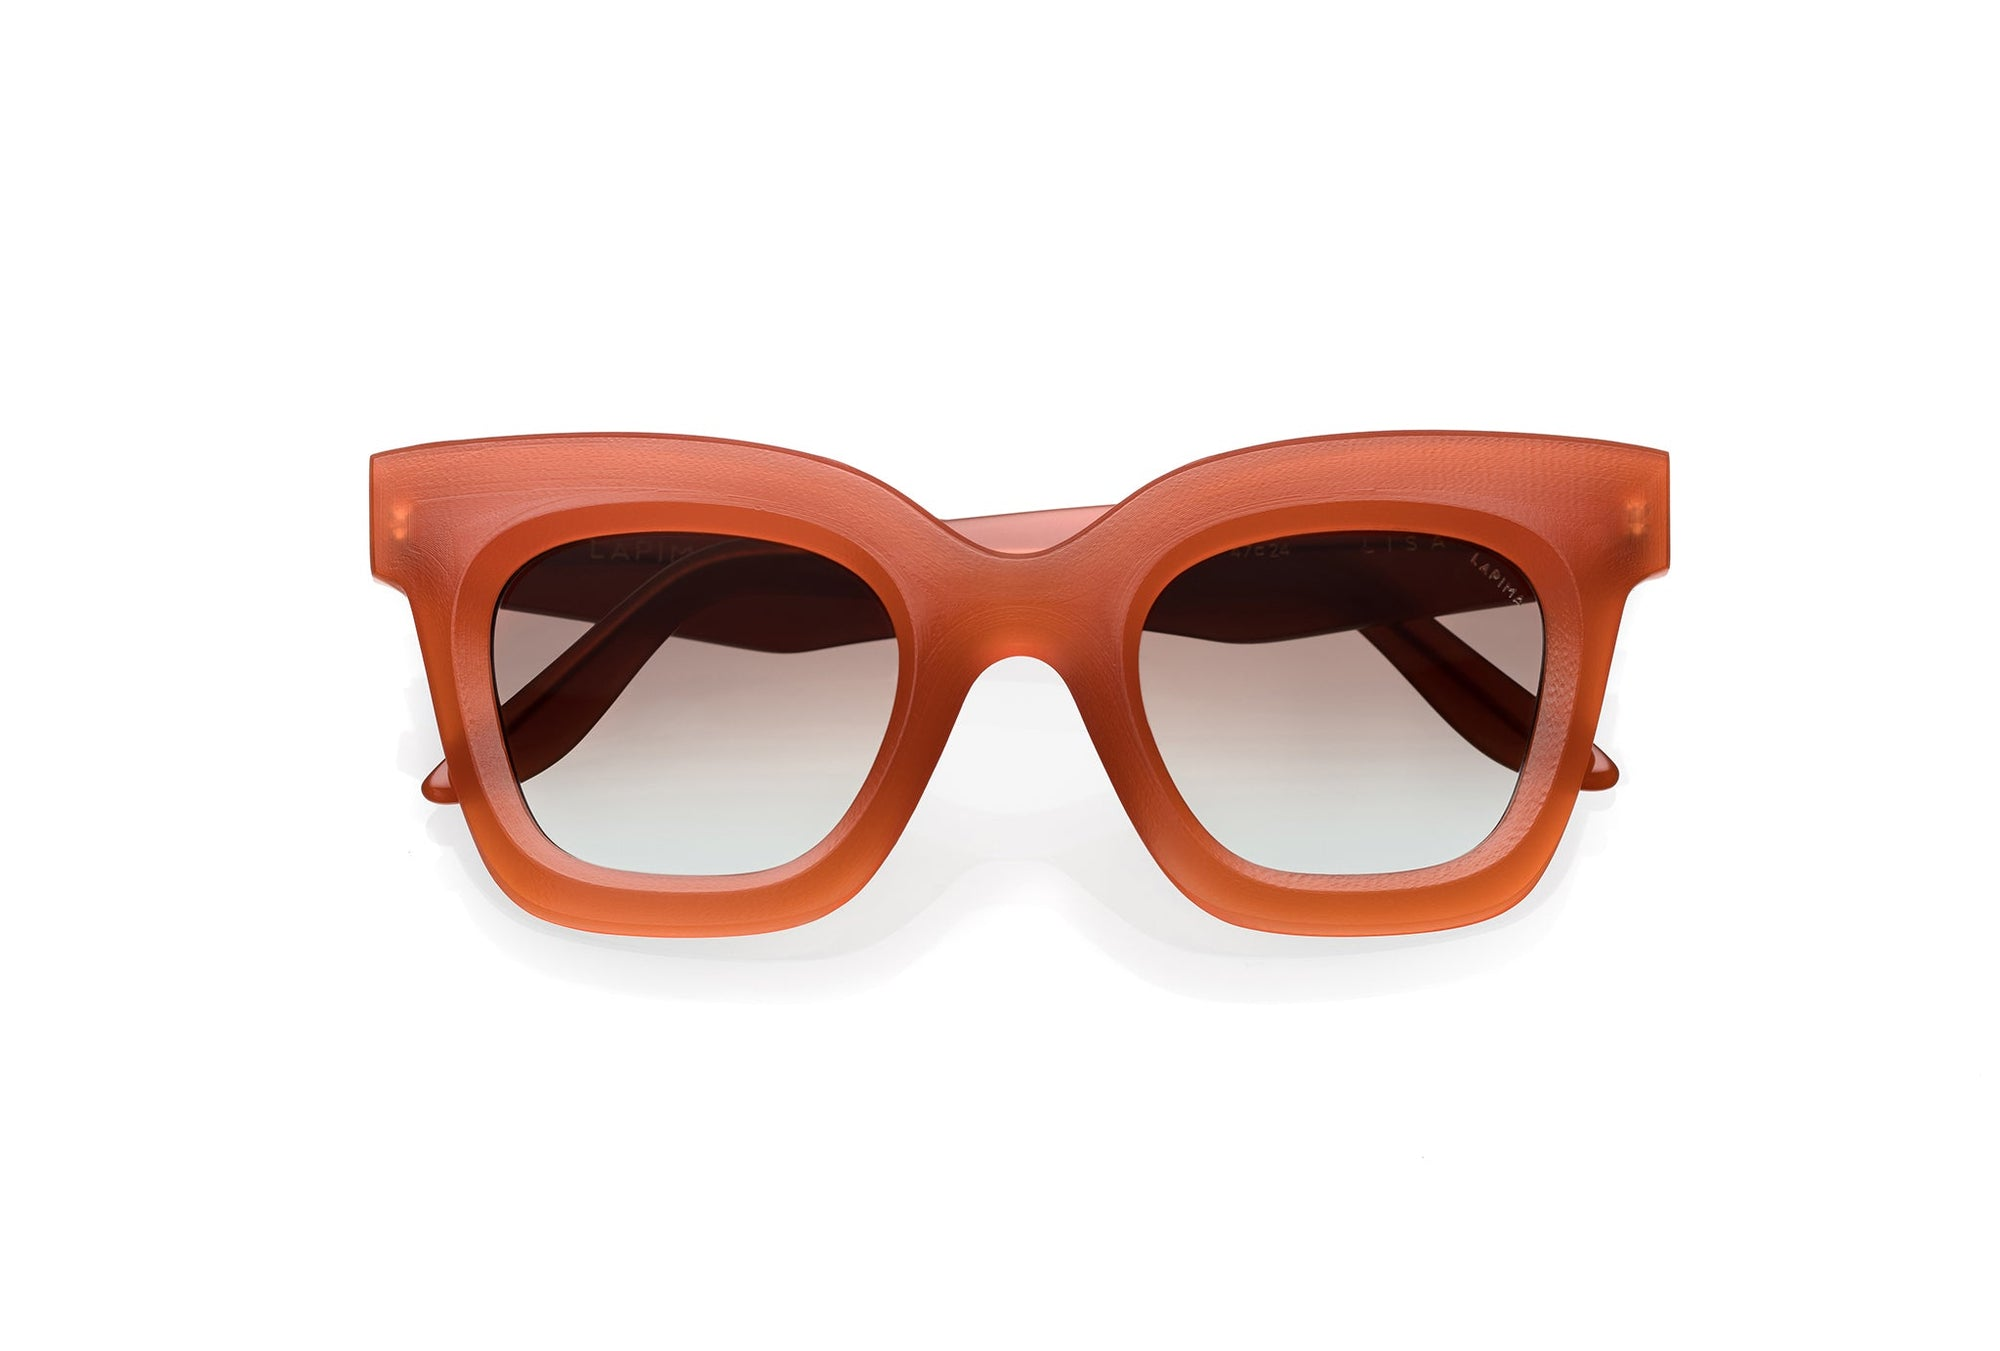 NATURAL SHELL GRADIENT – NATURAL SHELL ACETATE | BROWN GRADIENT LENSES